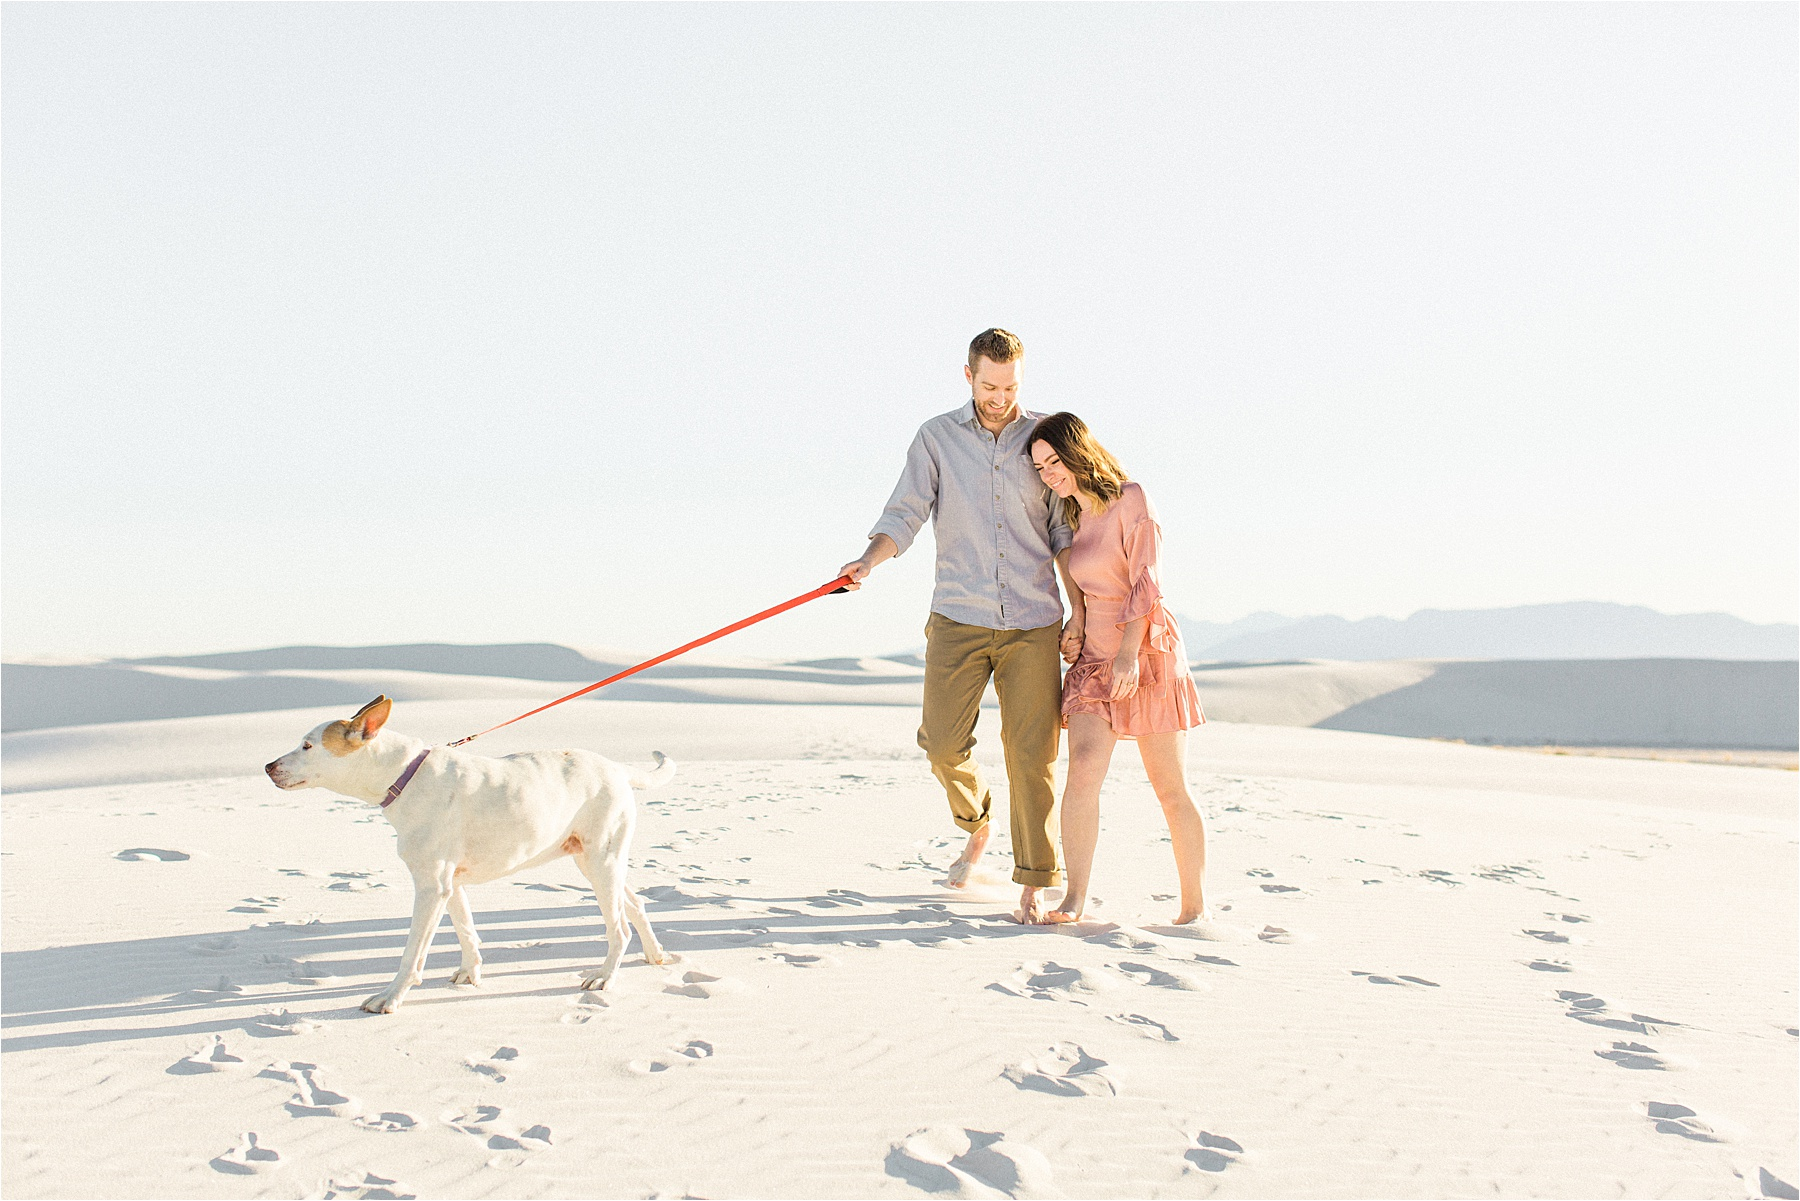 White Sands National Monument Engagement Photos, New Mexico Engagement Photographer, Sarah Ellefson Photography, White Sands New Mexico Photoshoot, White Sands Engagement Pictures, White Sands Photoshoot, White Sands Wedding